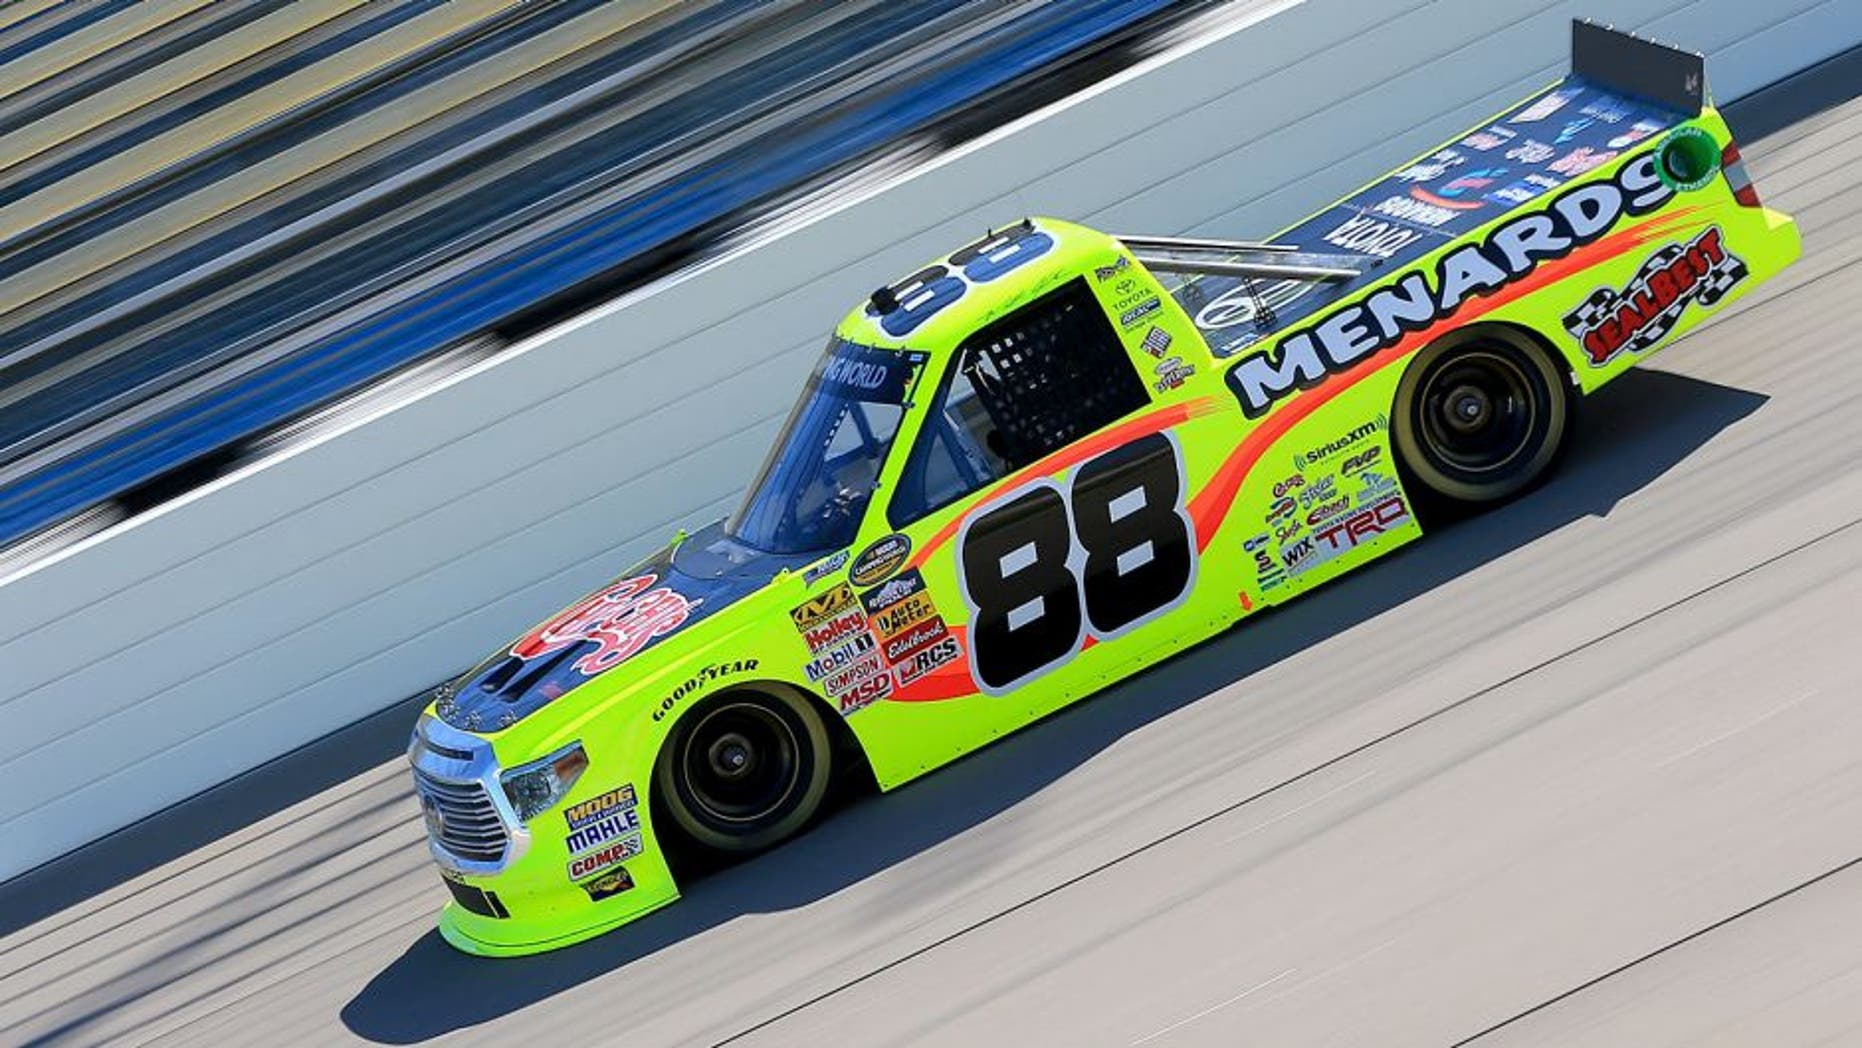 NEWTON, IA - JUNE 19: Matt Crafton, driver of the #88 Chi-Chi's/Menards Toyota, races during qualifying for the NASCAR Camping World Truck Series American Ethanol 200 at Iowa Speedway on June 19, 2015 in Newton, Iowa. (Photo by Daniel Shirey/NASCAR via Getty Images)